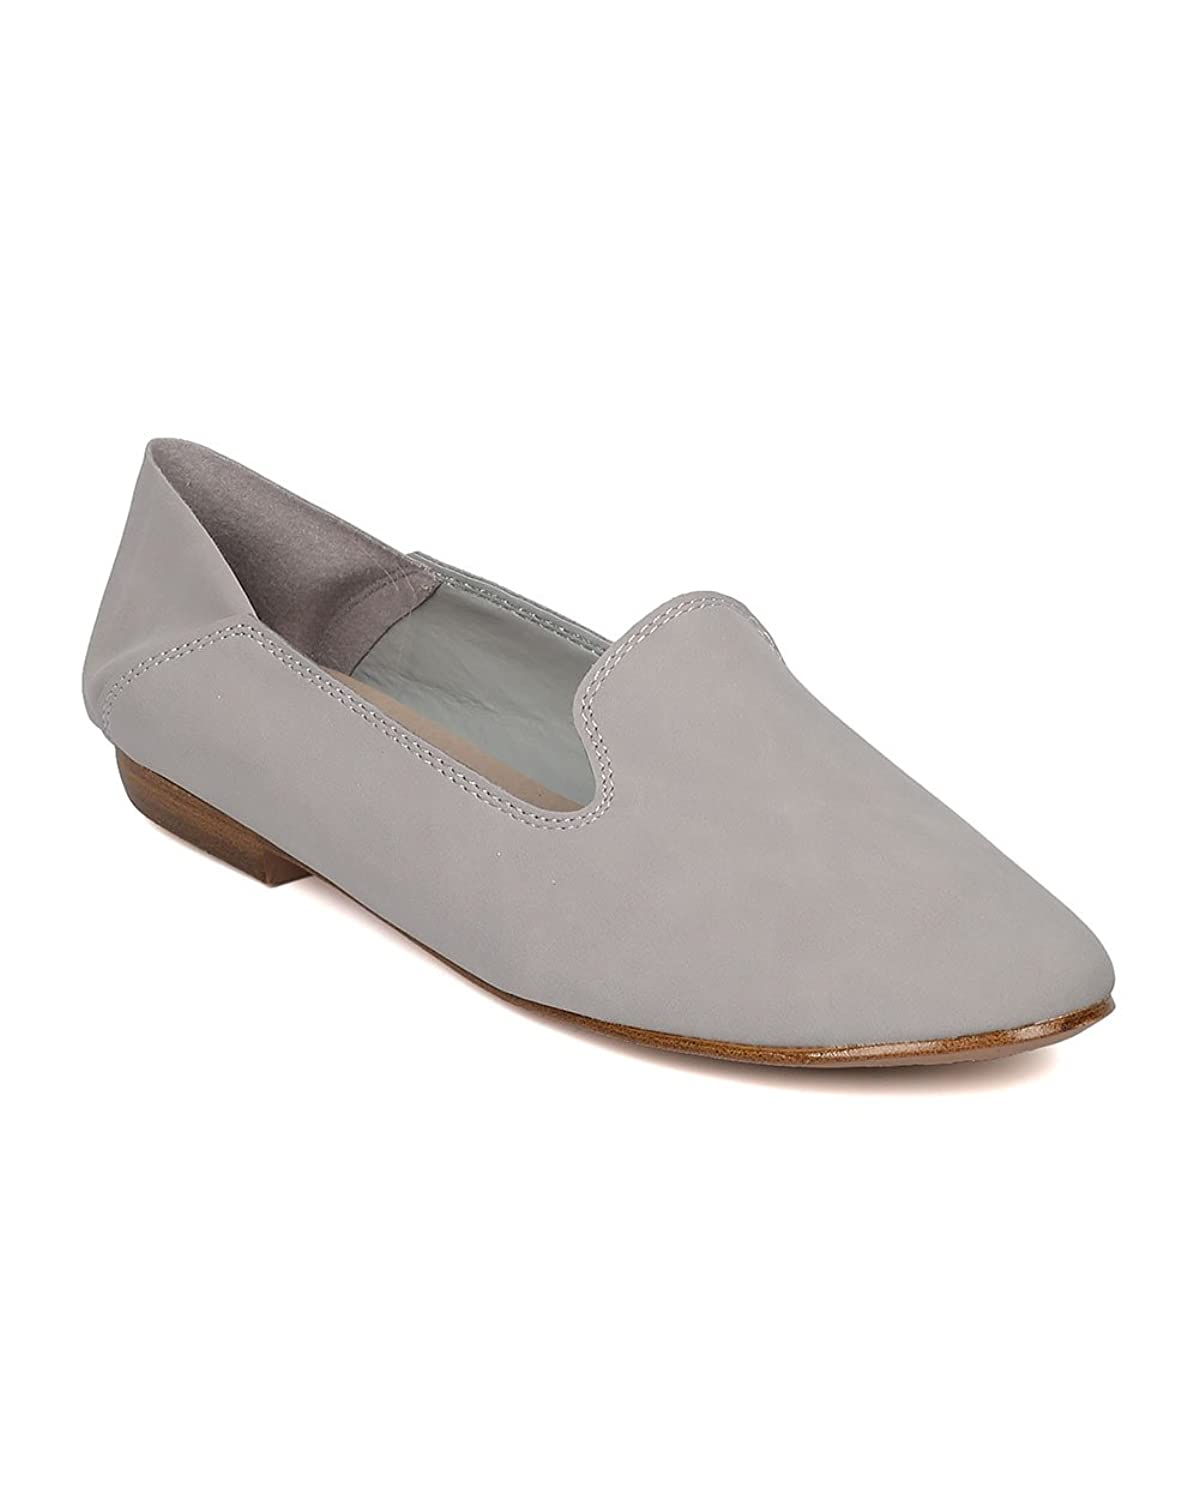 Women Nubuck Slip on Loafer - Casual Office Everyday on The Go - Slip on Flat - GH12 by